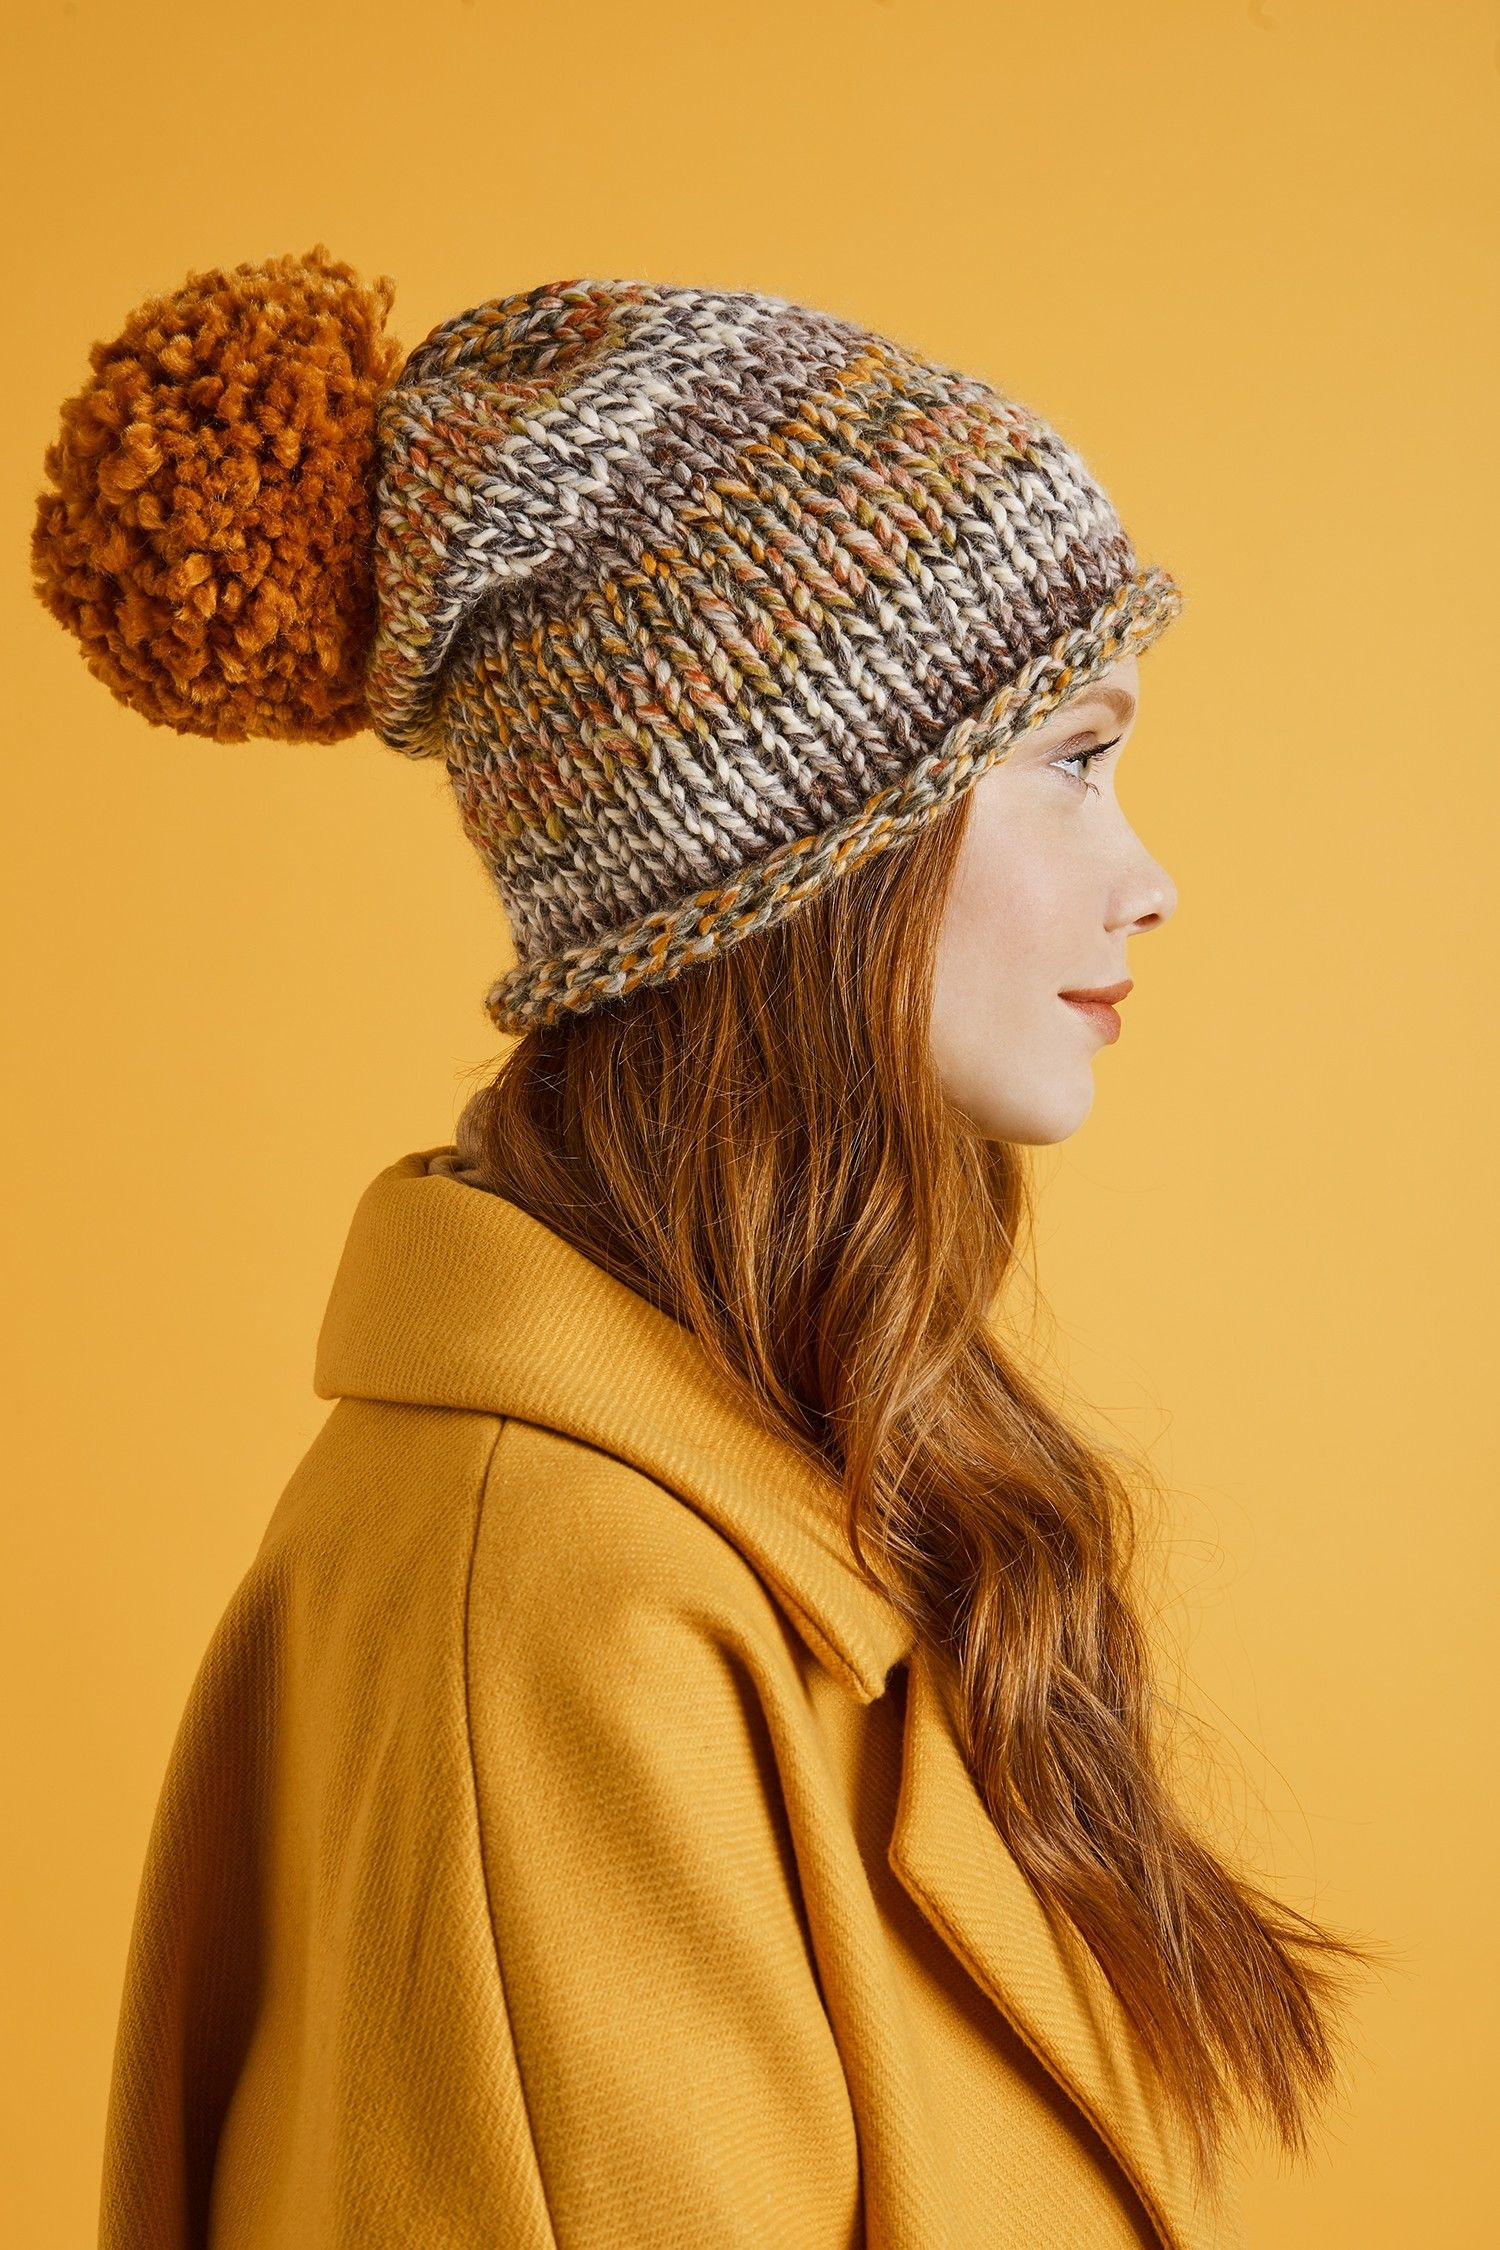 Simple Hat (Knit)   Knit and Crochet - Accessories   Pinterest ...